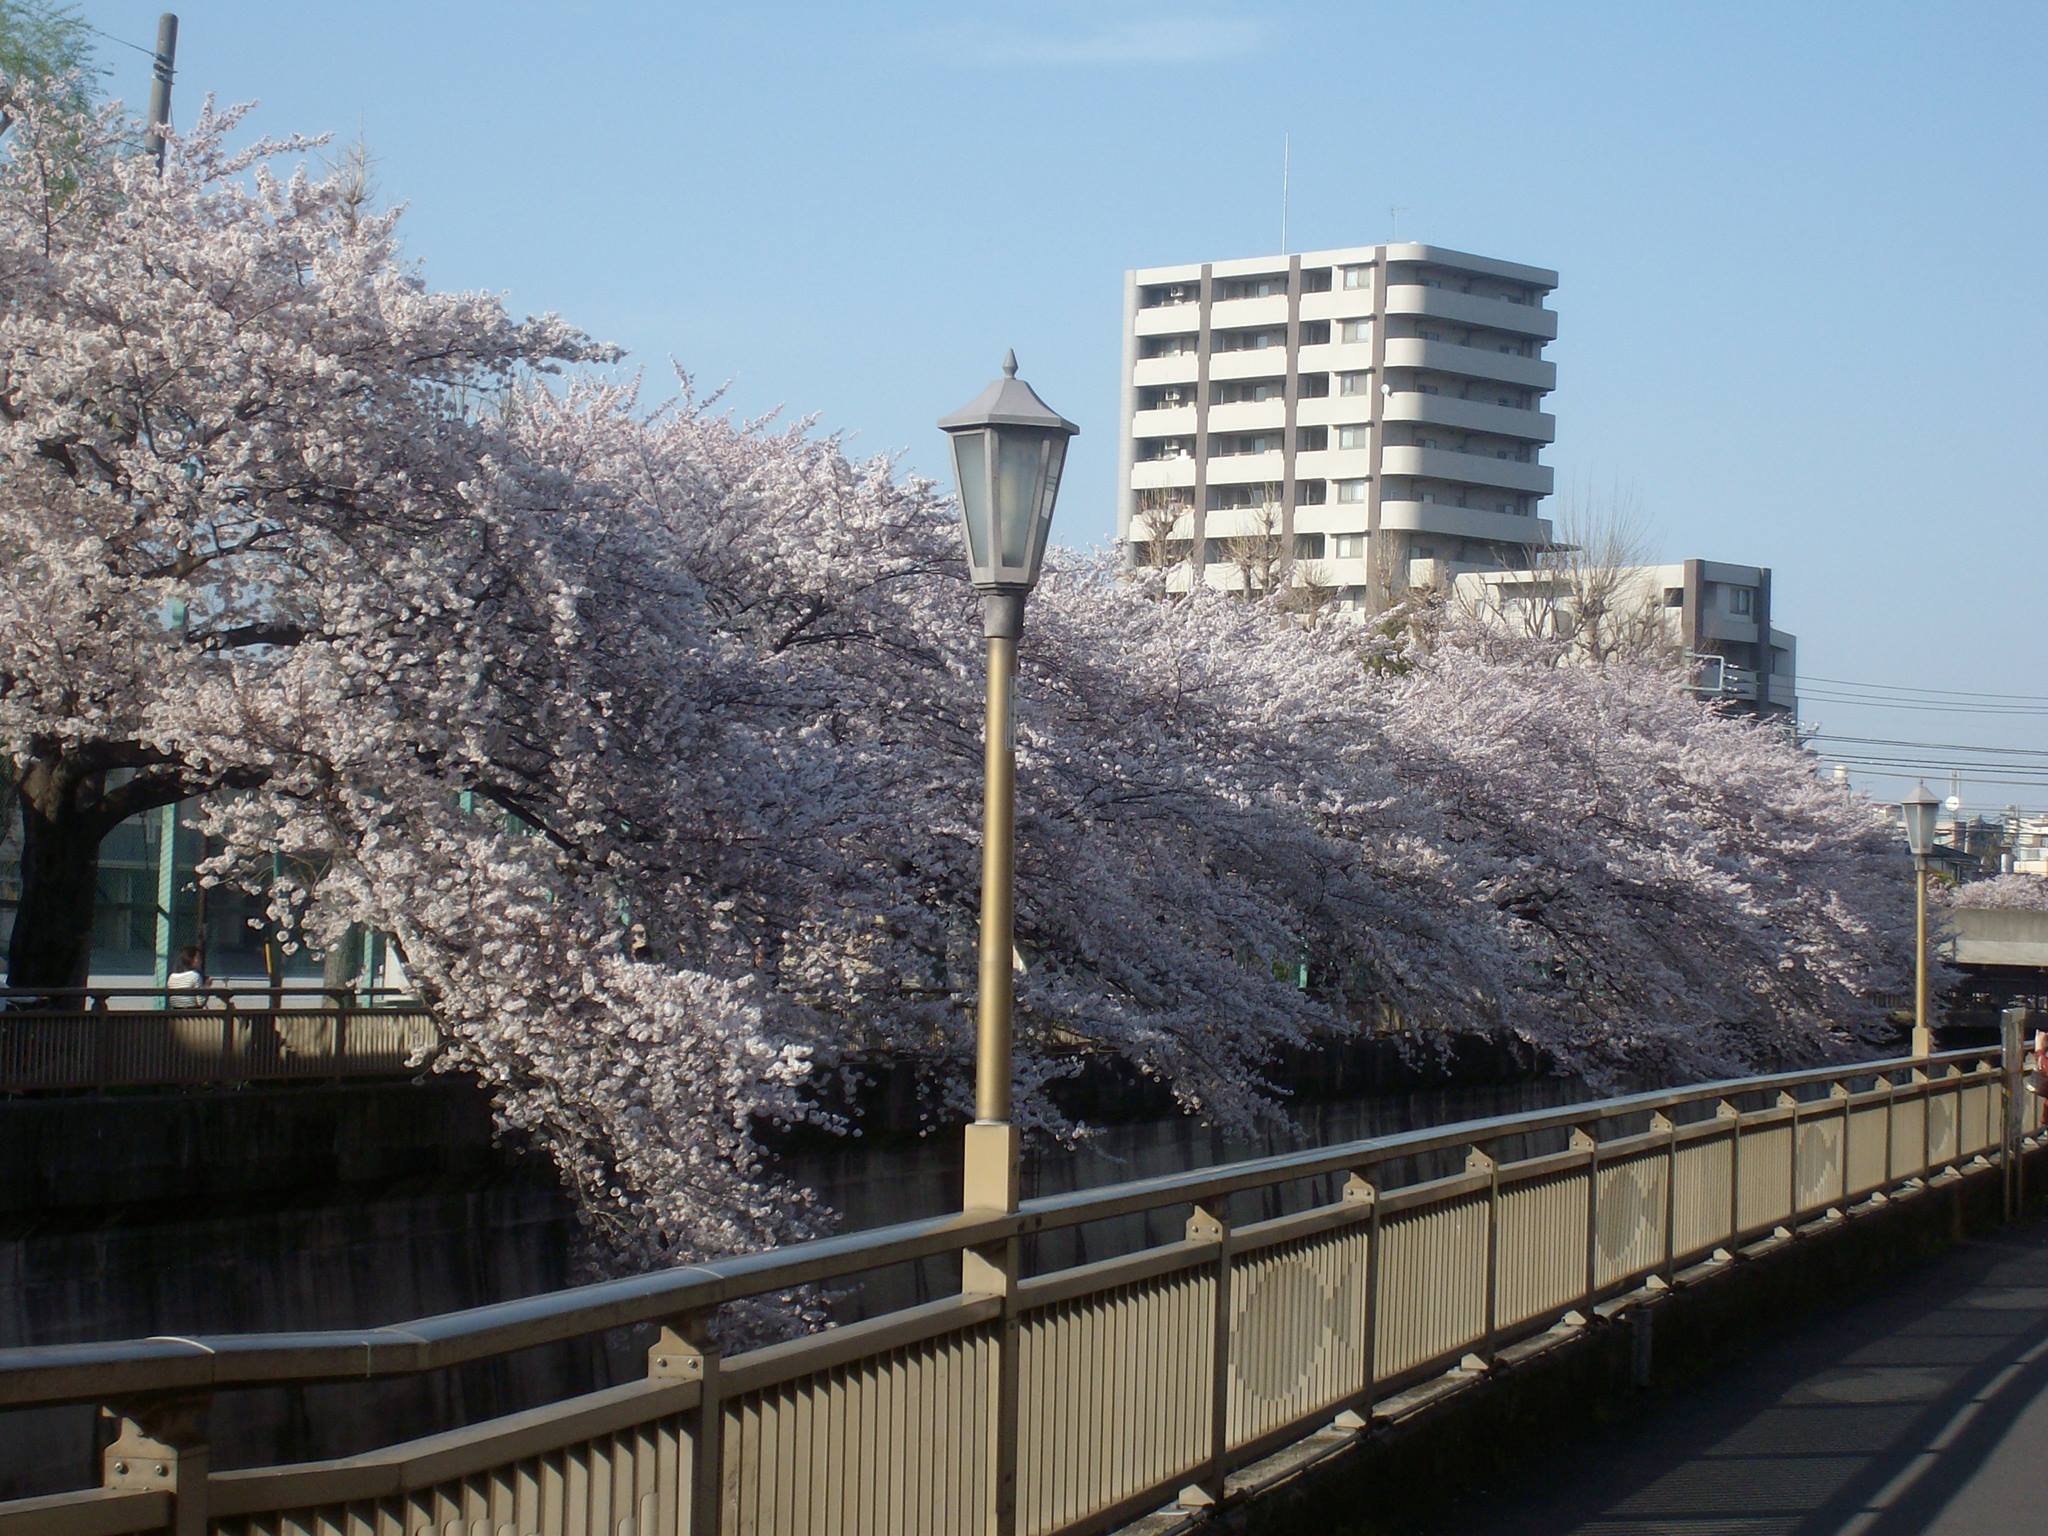 Cherry blossoms along the river in Tokyo